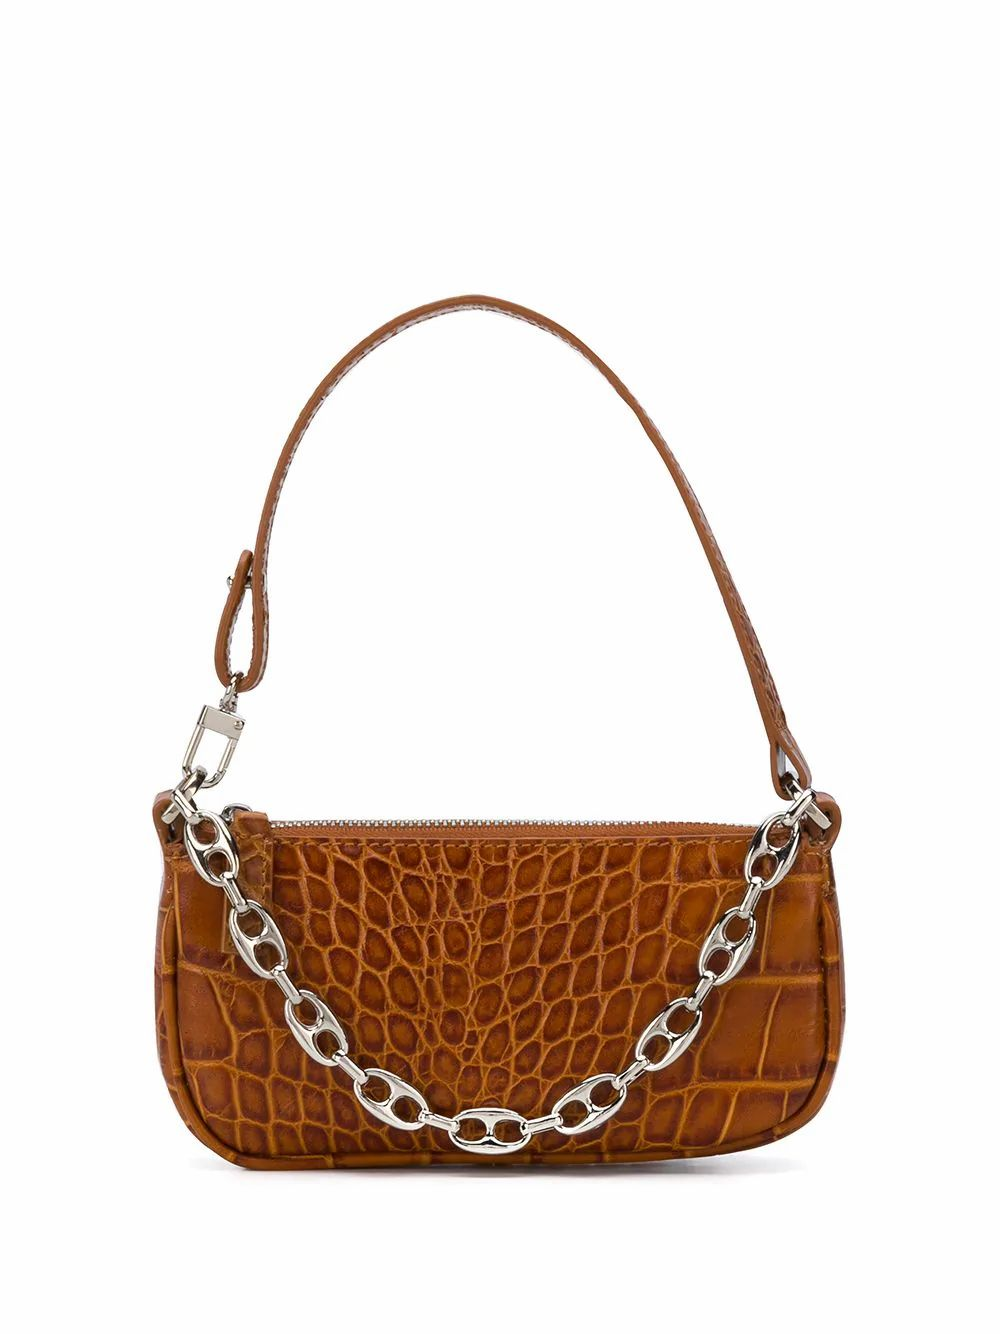 BY FAR BY FAR WOMEN'S BROWN LEATHER HANDBAG